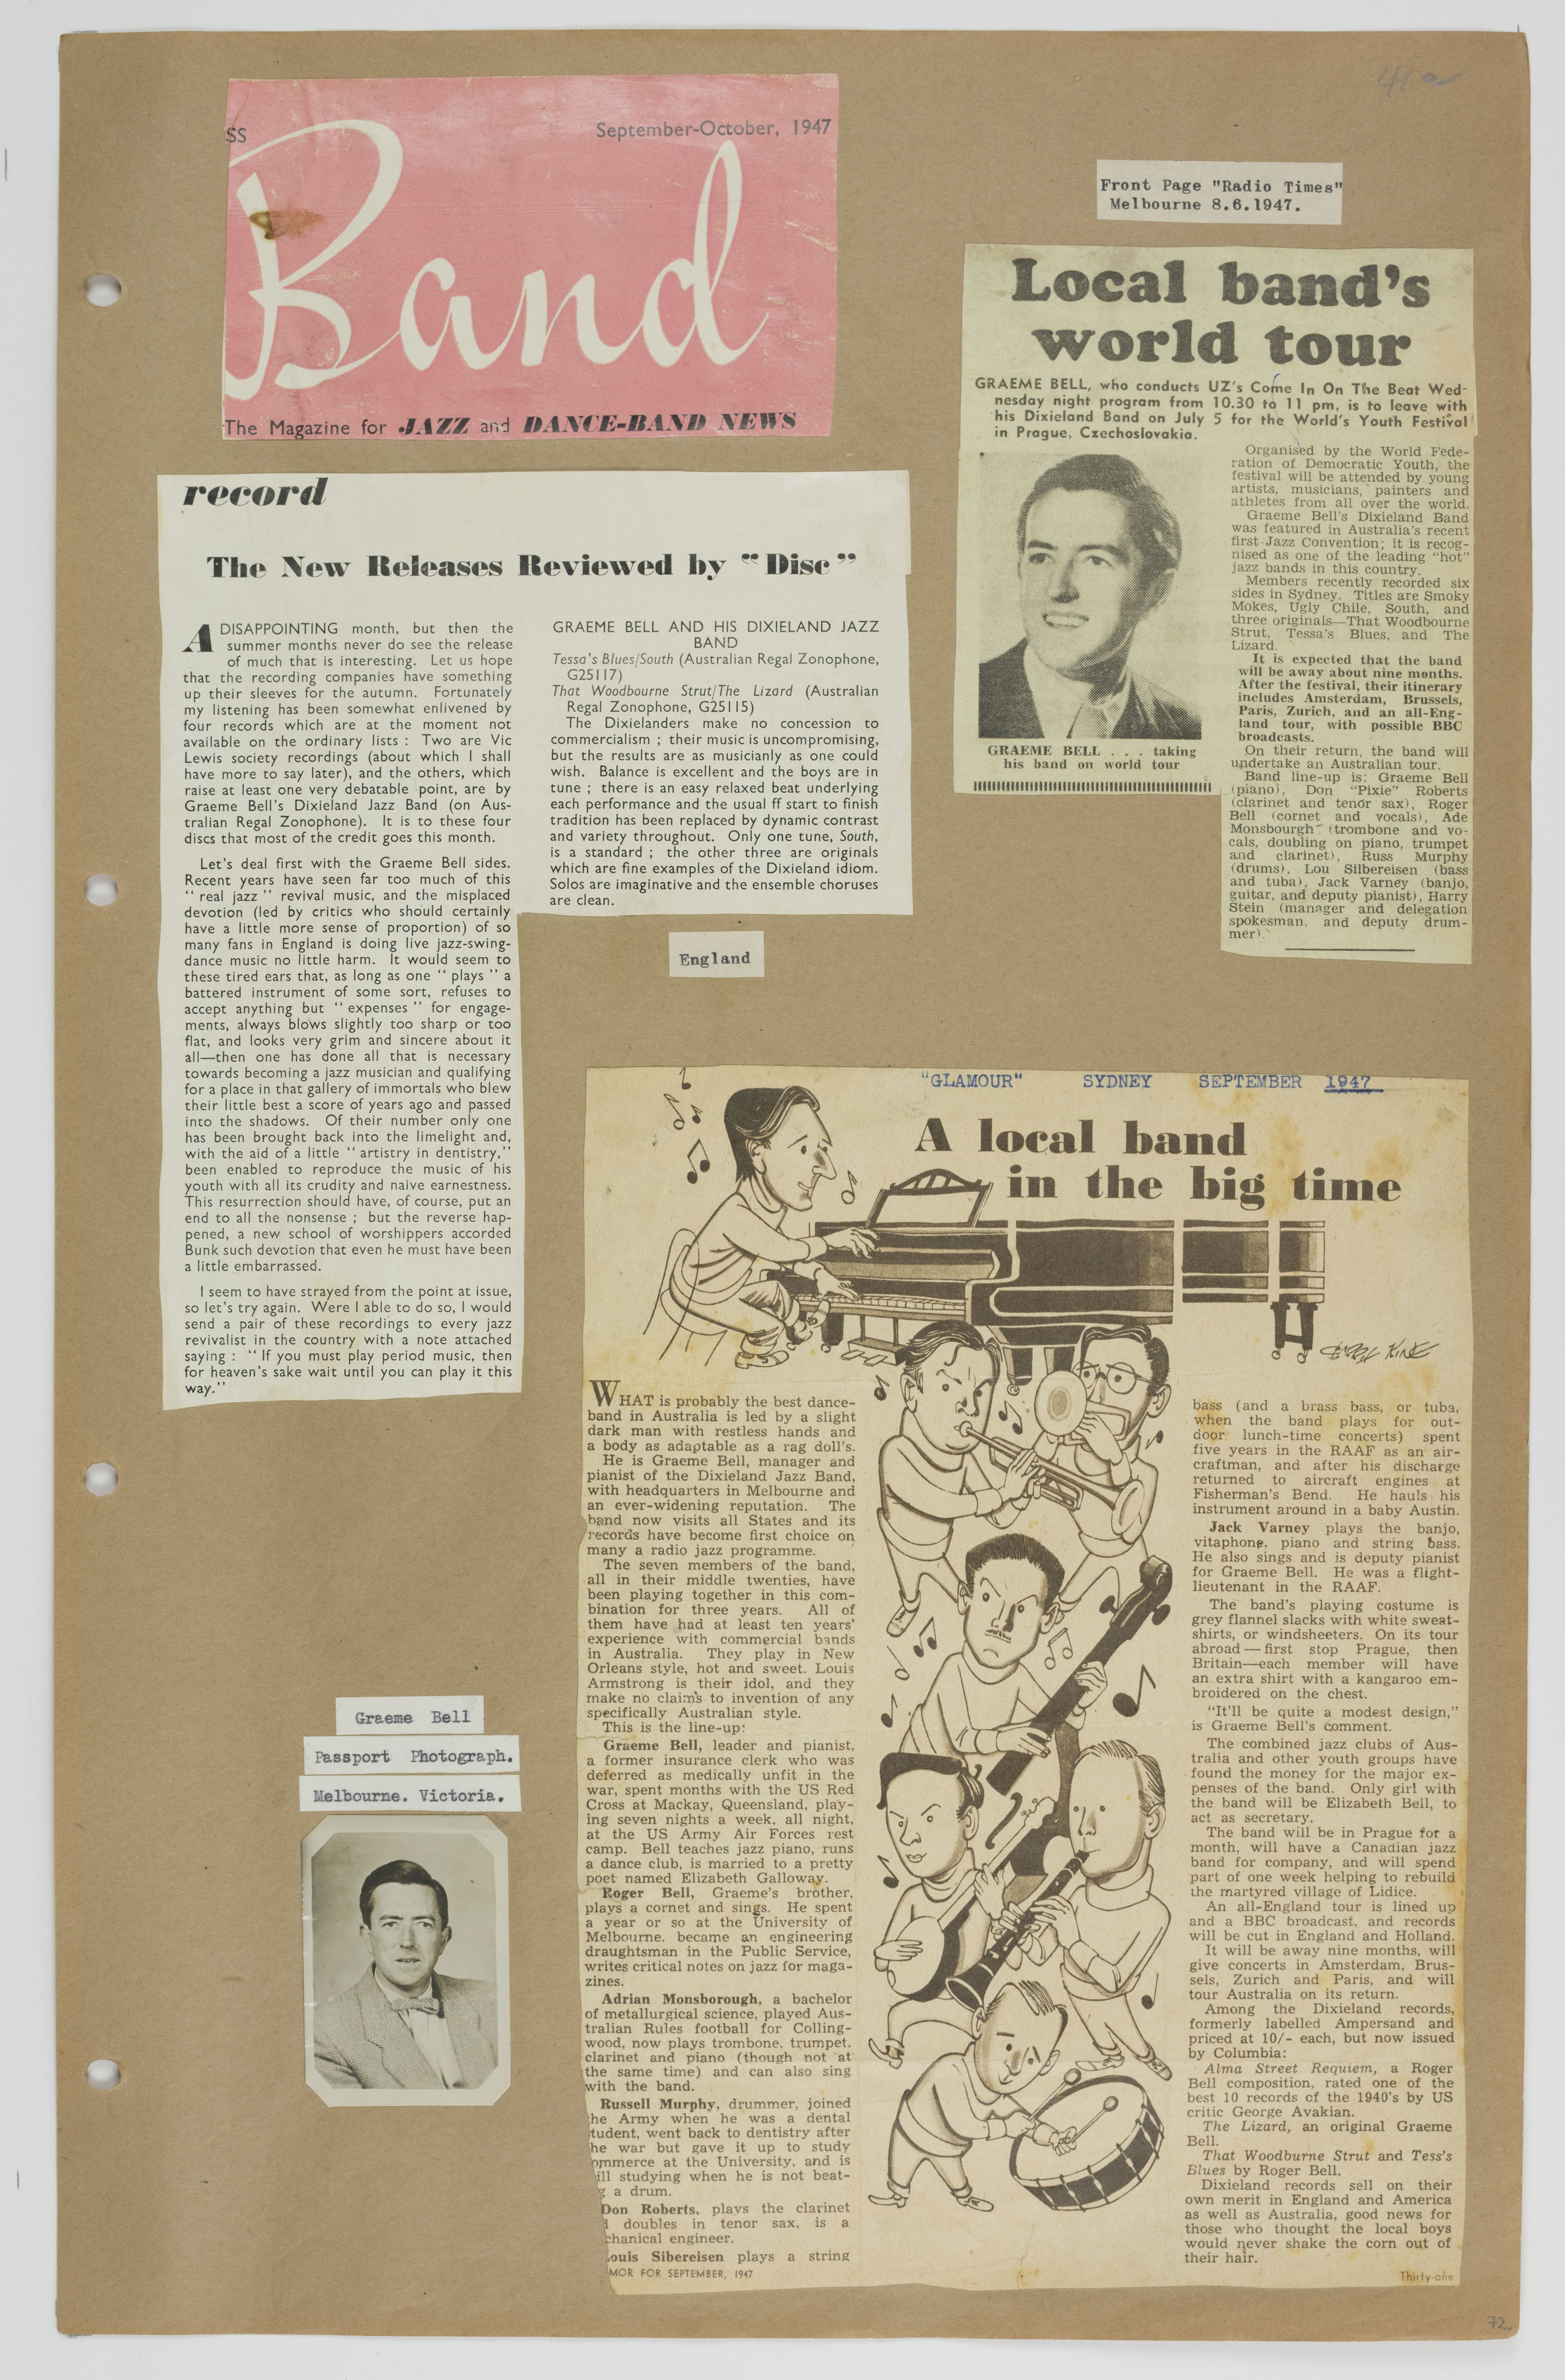 A page from Volume 1 of the Graeme Bell scrapbook collection.